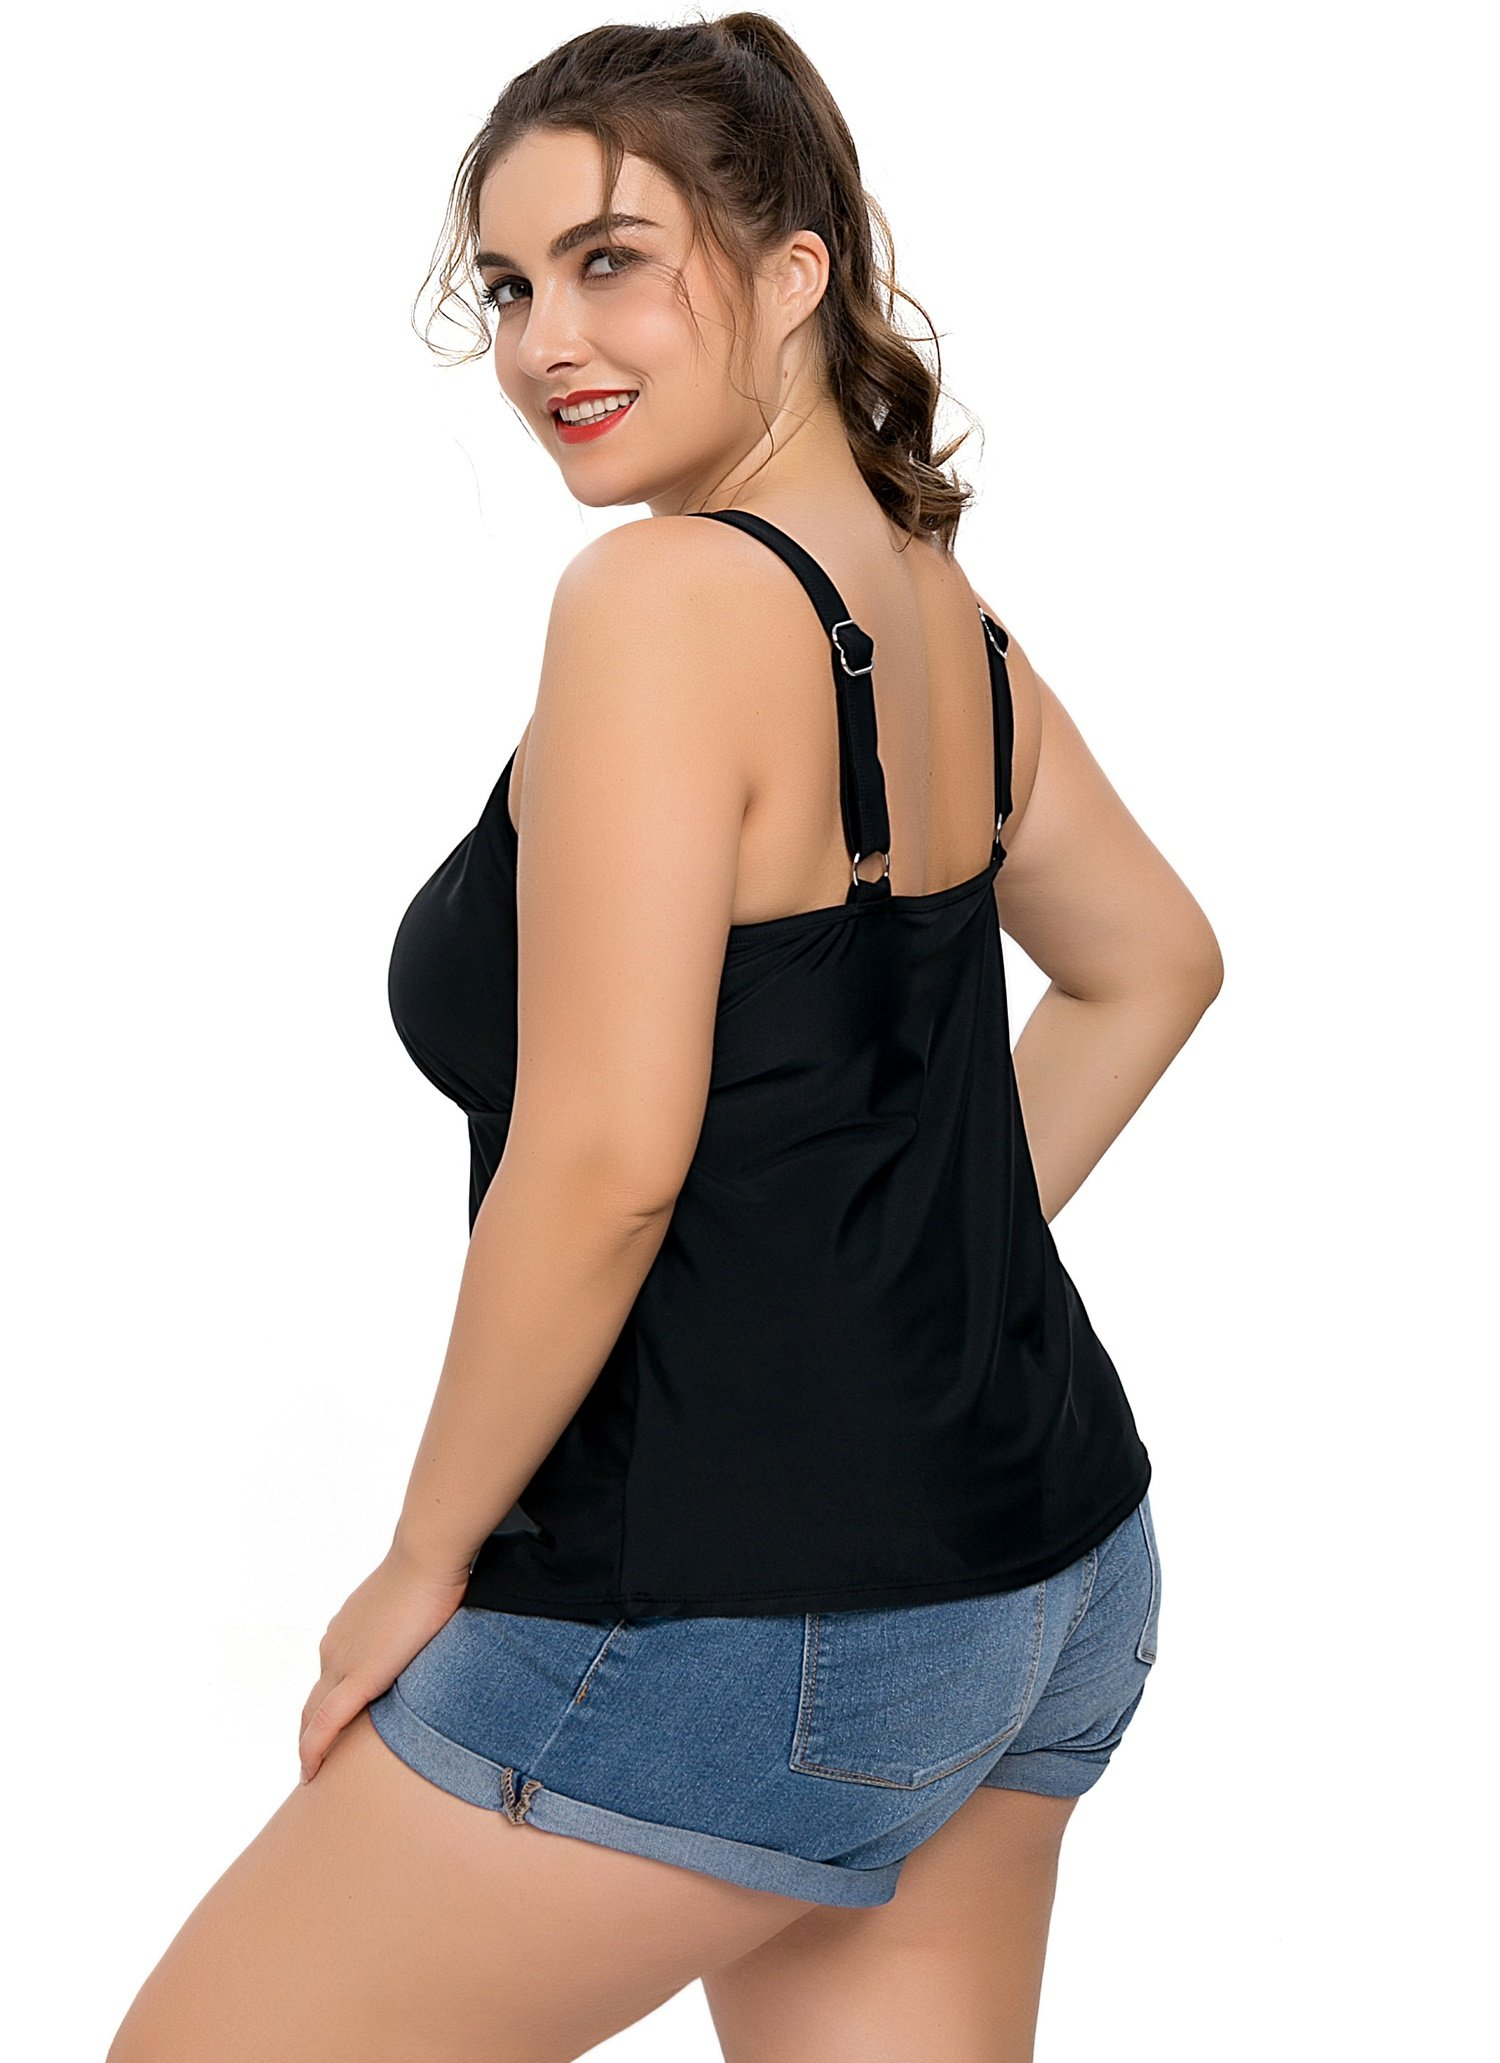 Anwell Womens's Loose Fit Black Solid Tankini Top Plus Size Swimsuit Shirt 18 by Anwell (Image #6)